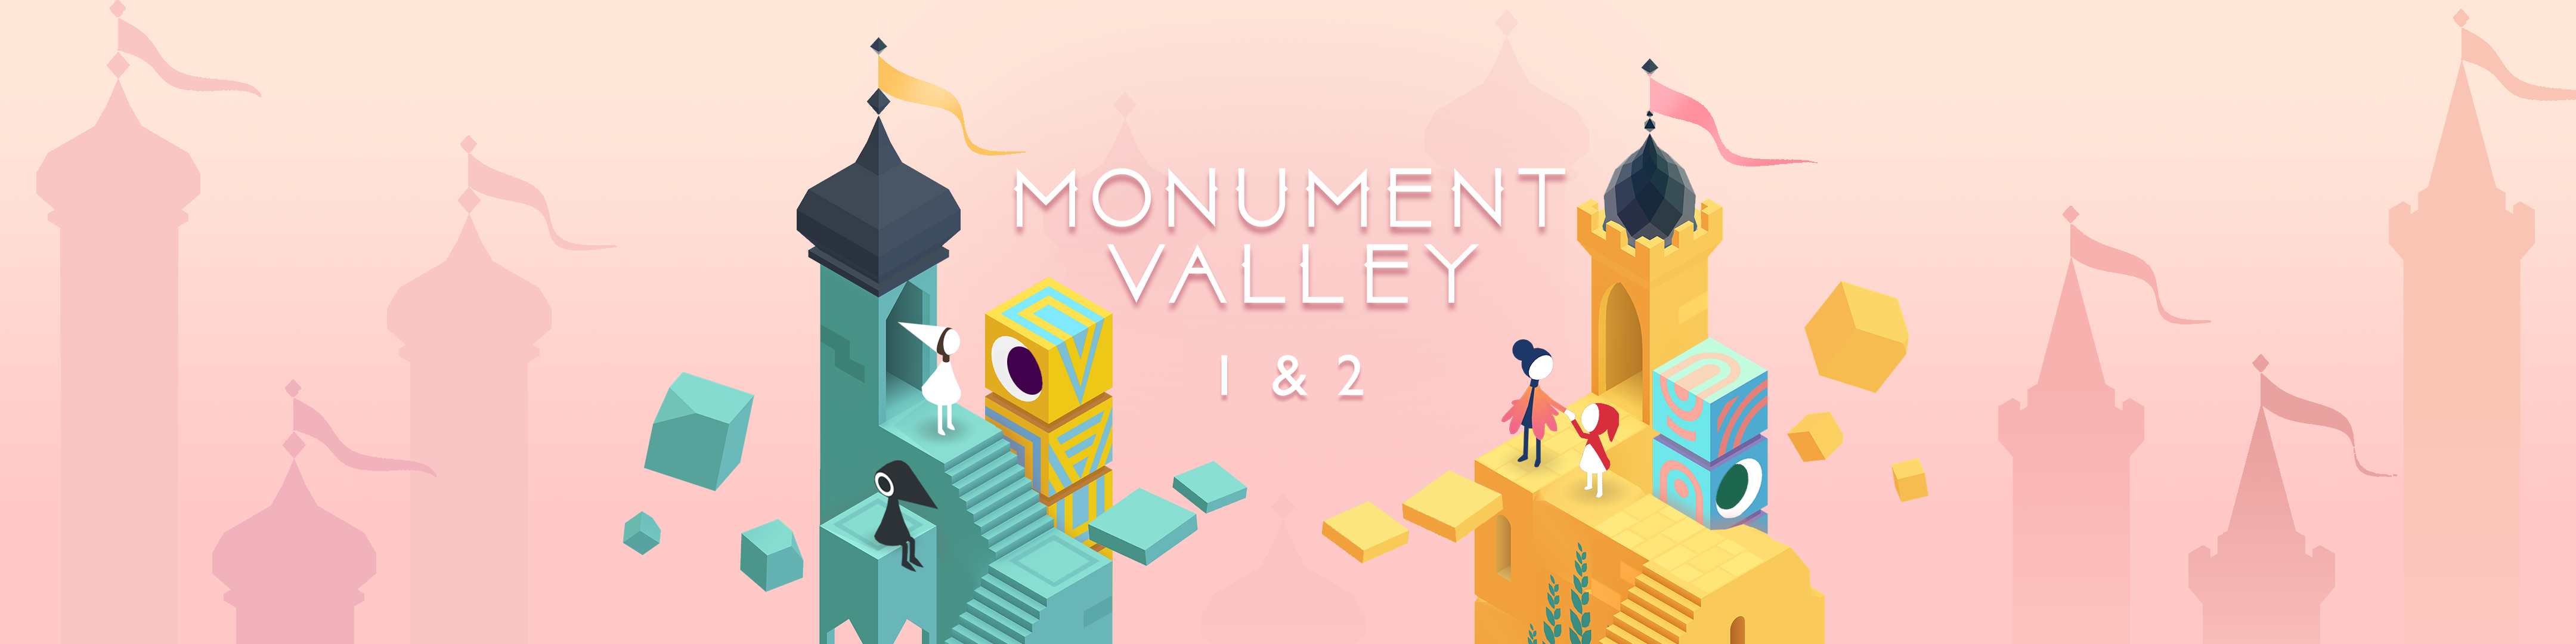 monument valley 2 apk full